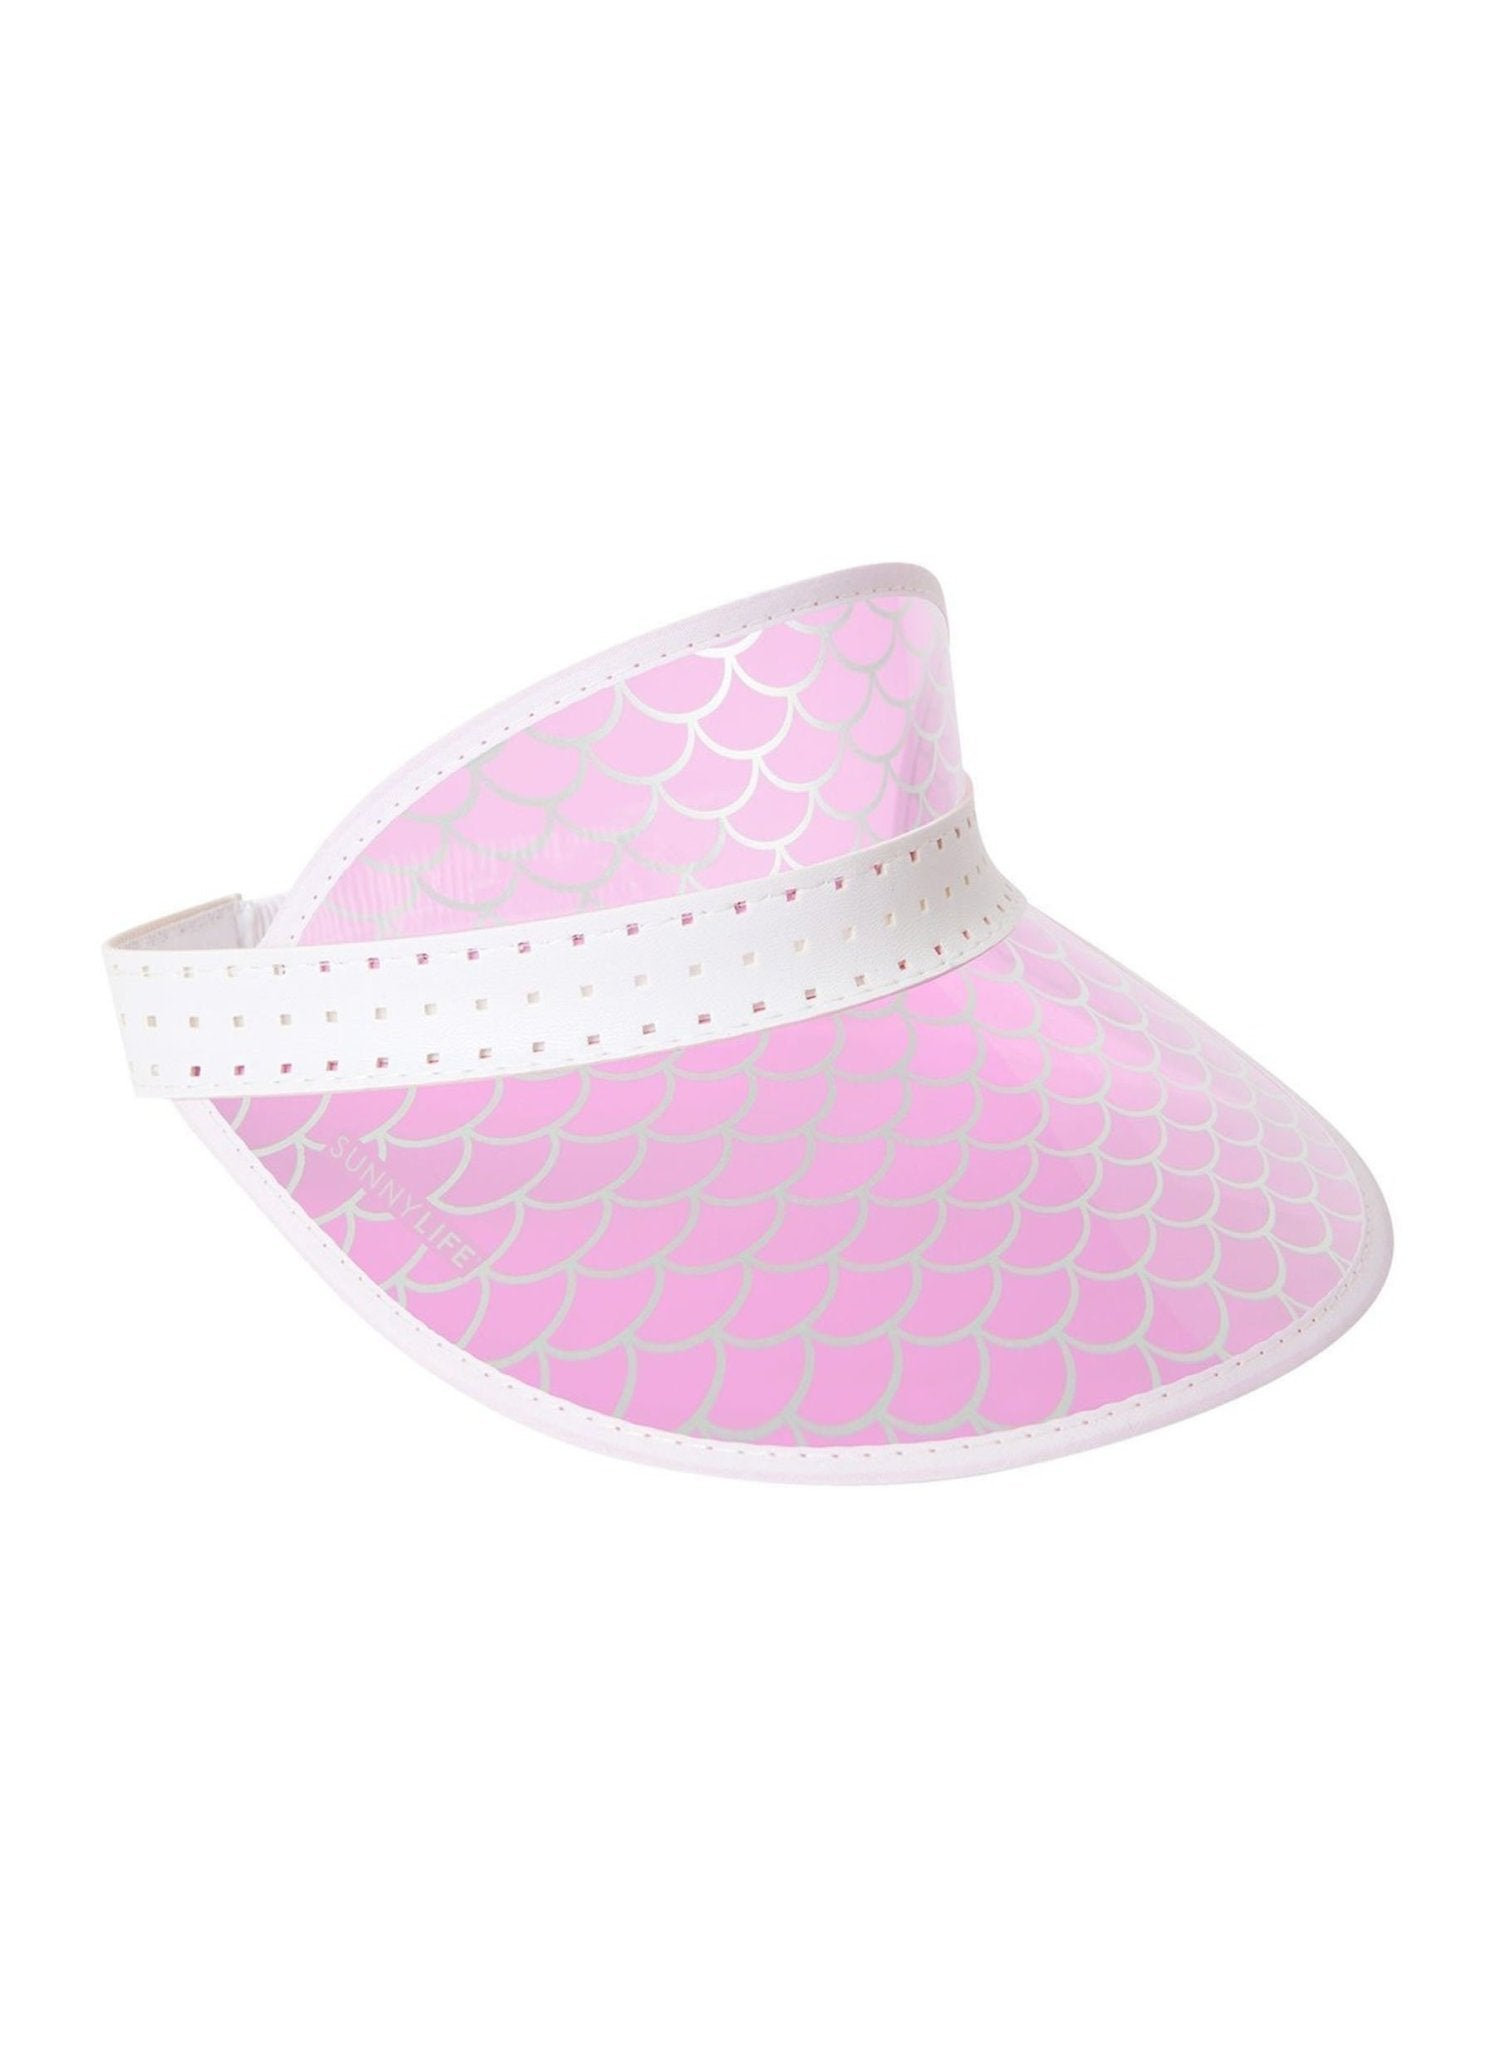 Retro Sun Visor - Mermaid - Salty Mermaid Swim